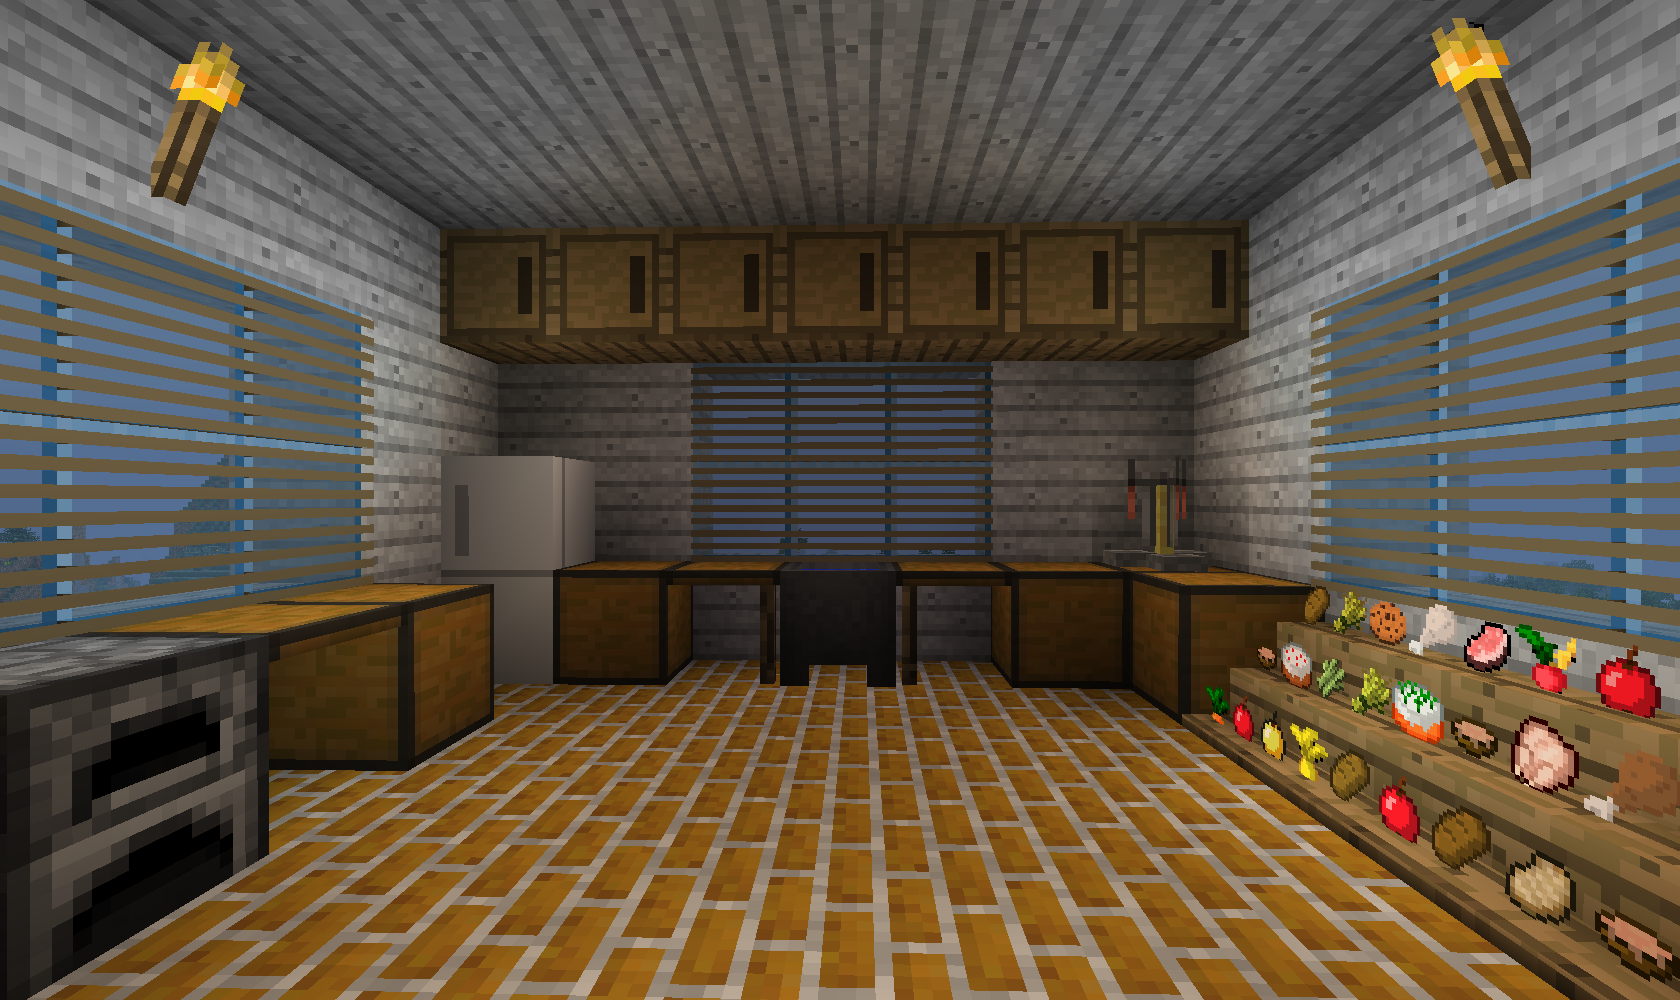 Minecraft Kitchen Ideas Xbox minecraft kitchen only will use item frames for the food so they